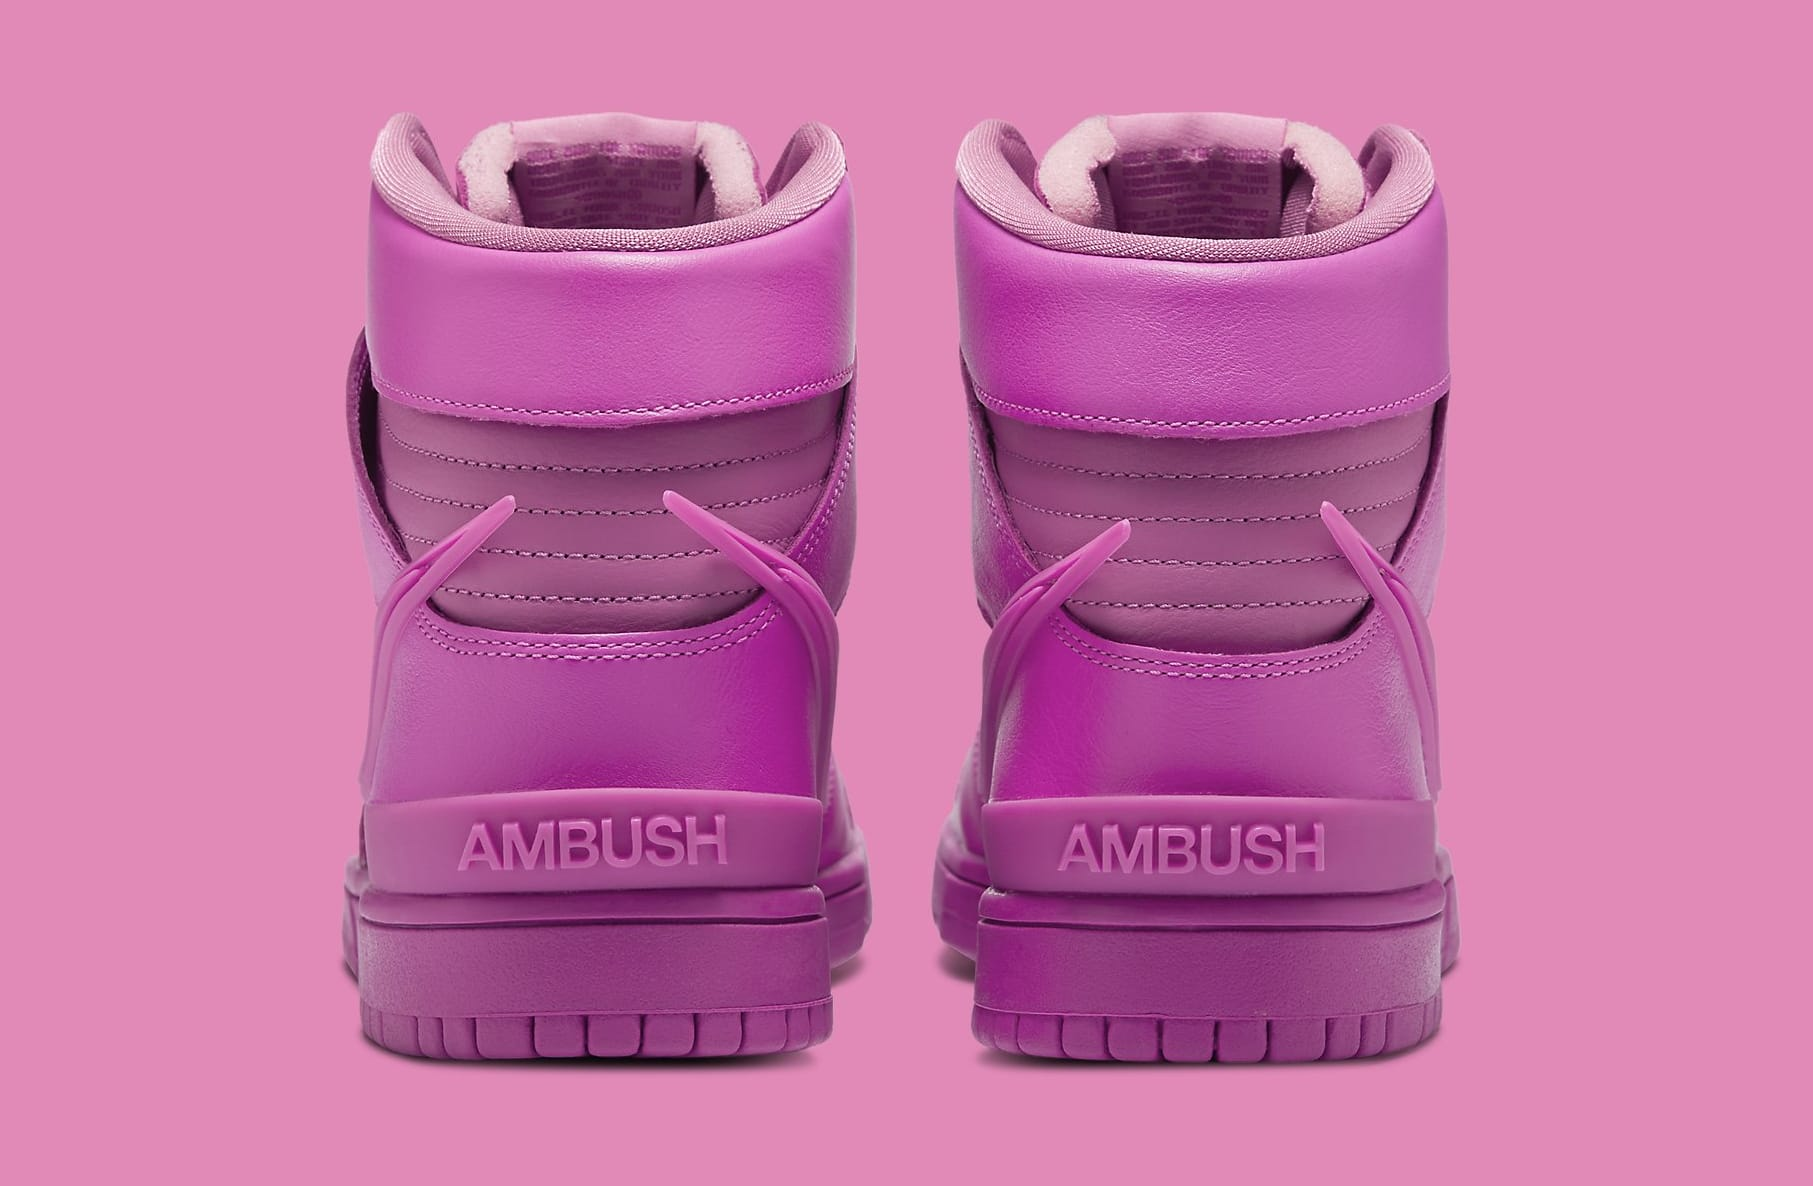 Ambush x Nike Dunk High 'Cosmic Fuchsia' CU7544-600 Heel